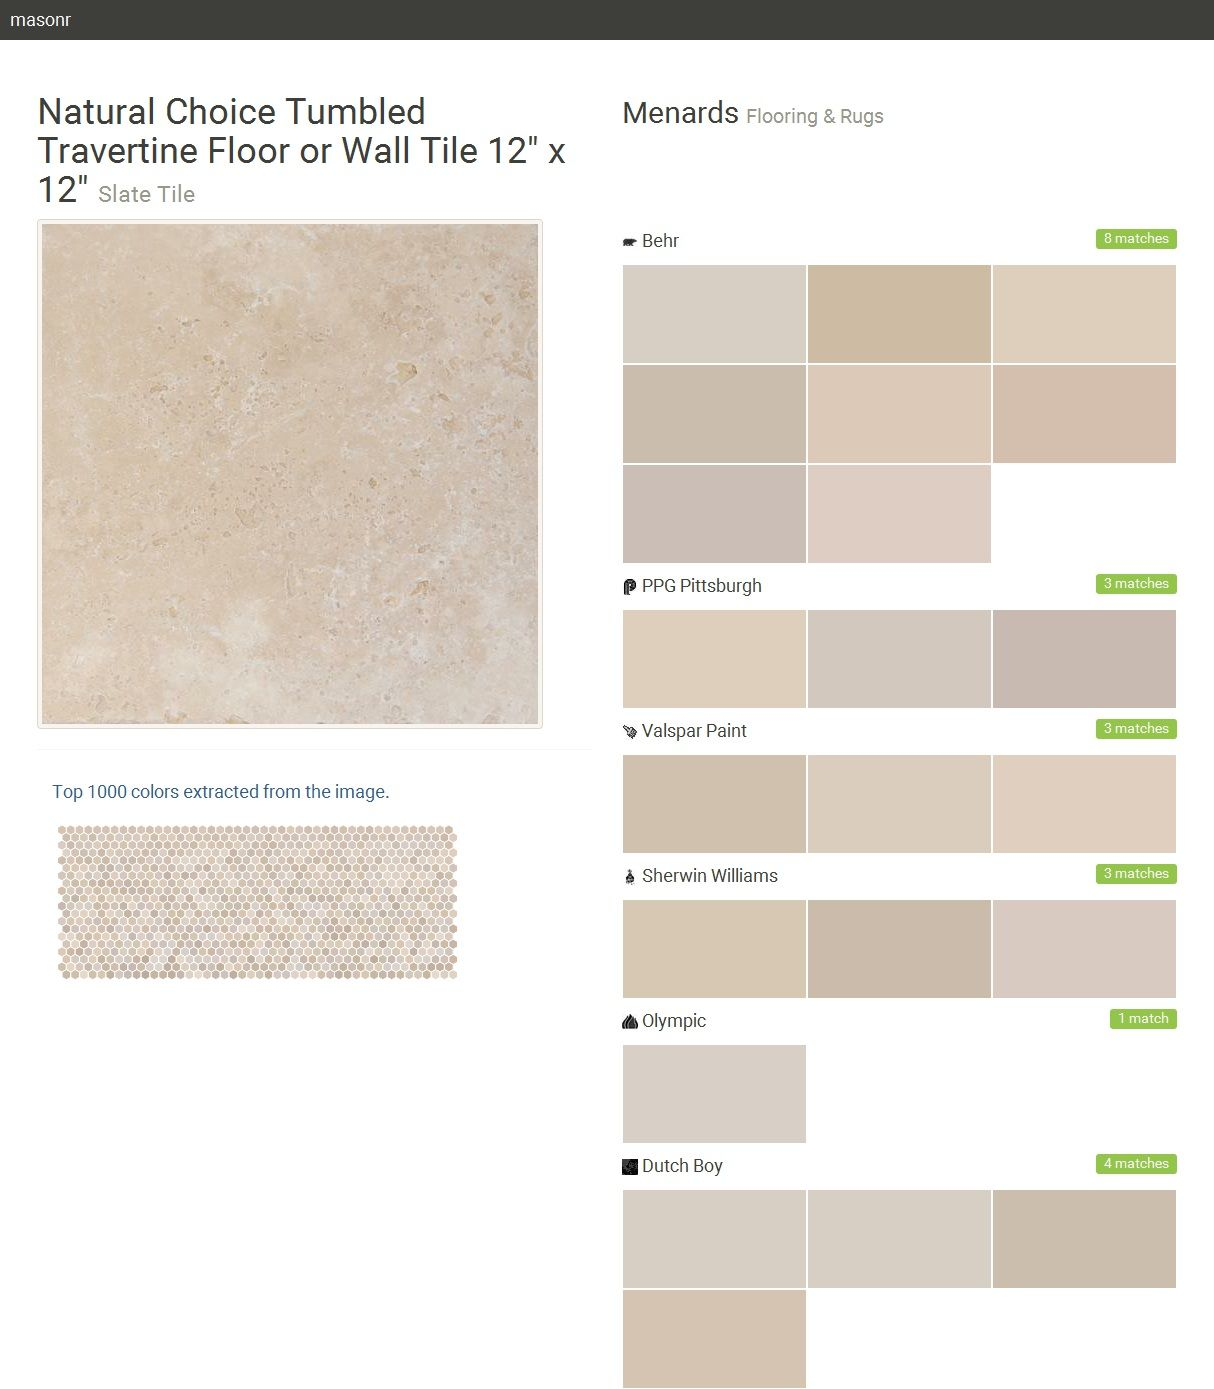 Natural choice tumbled travertine floor or wall tile 12 x 12 natural choice tumbled travertine floor or wall tile x slate tile click the gray visit button to see the matching paint names dailygadgetfo Image collections